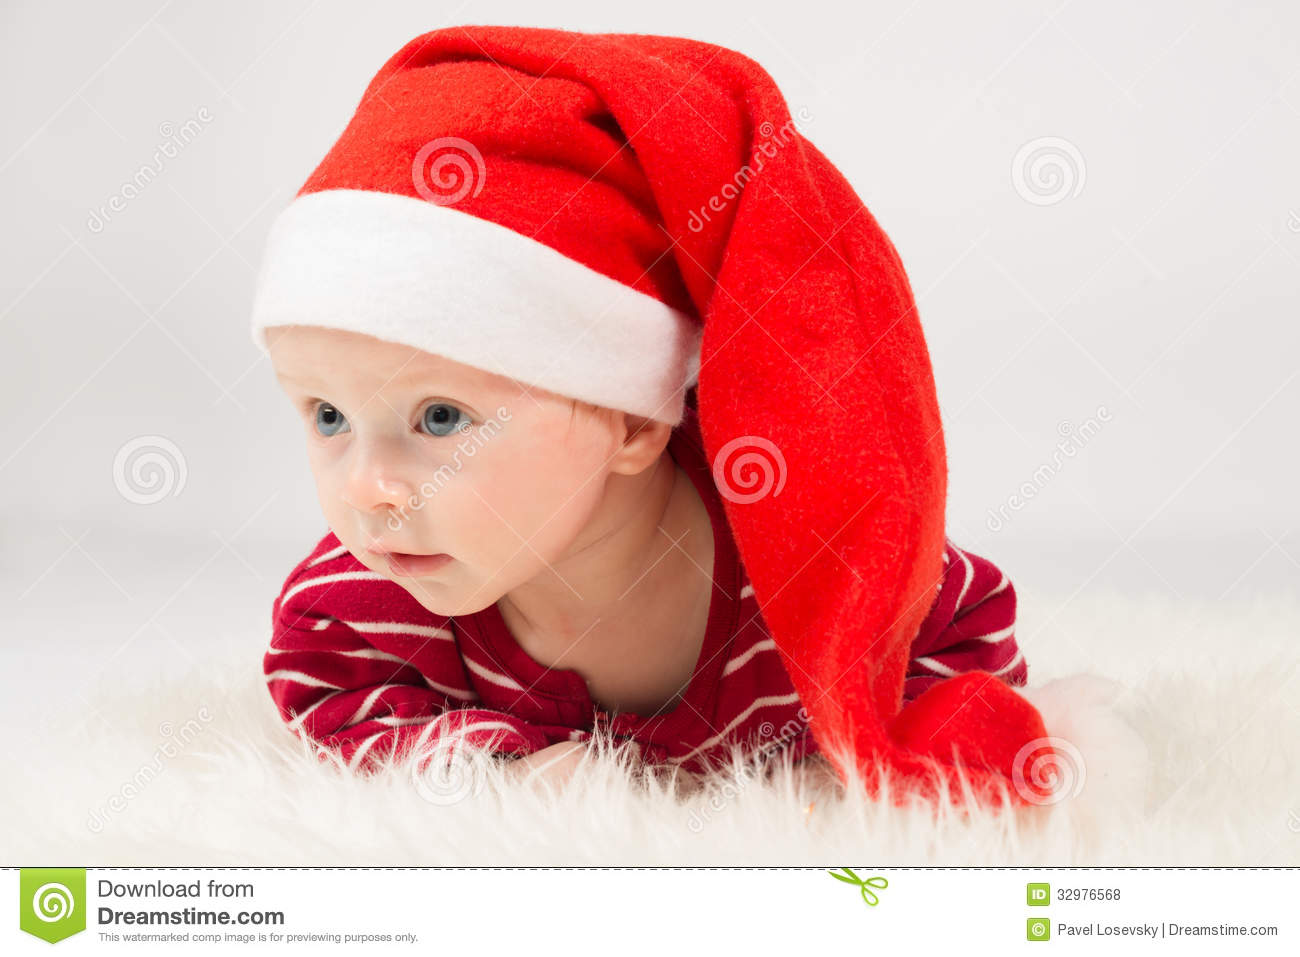 bf98043b0a8 Baby Boy In Santa Claus Cap Stock Photo - Image of male